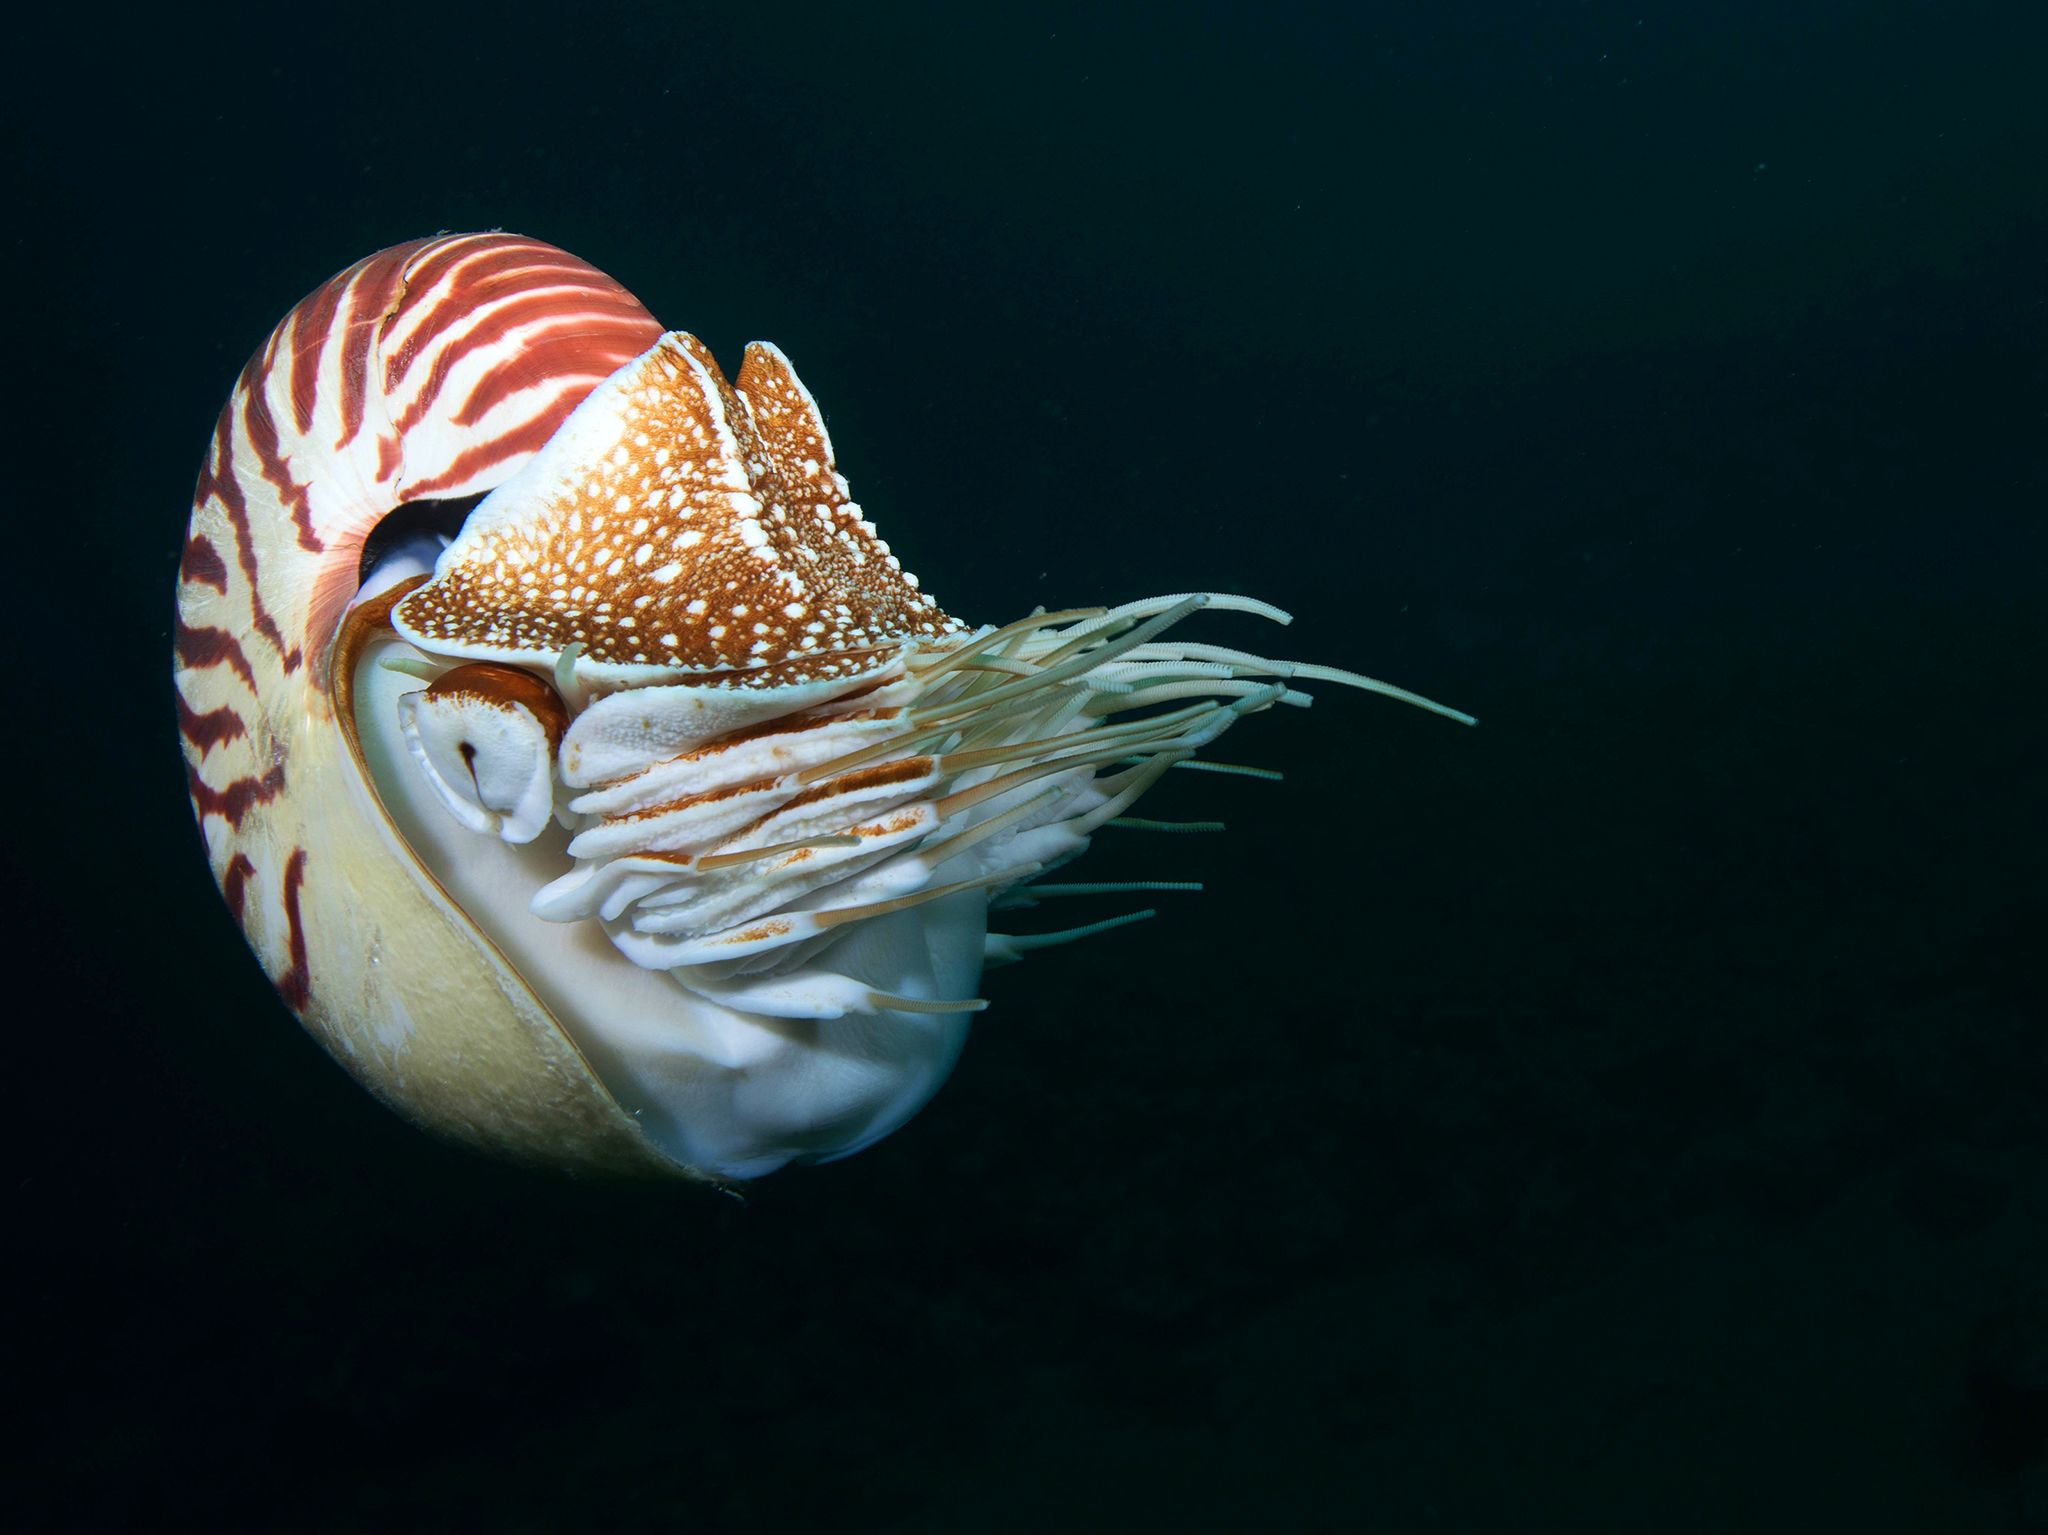 Chambered nautilus.  This image is from Untamed Philippines. [Photo of the day - ژوئن 2019]